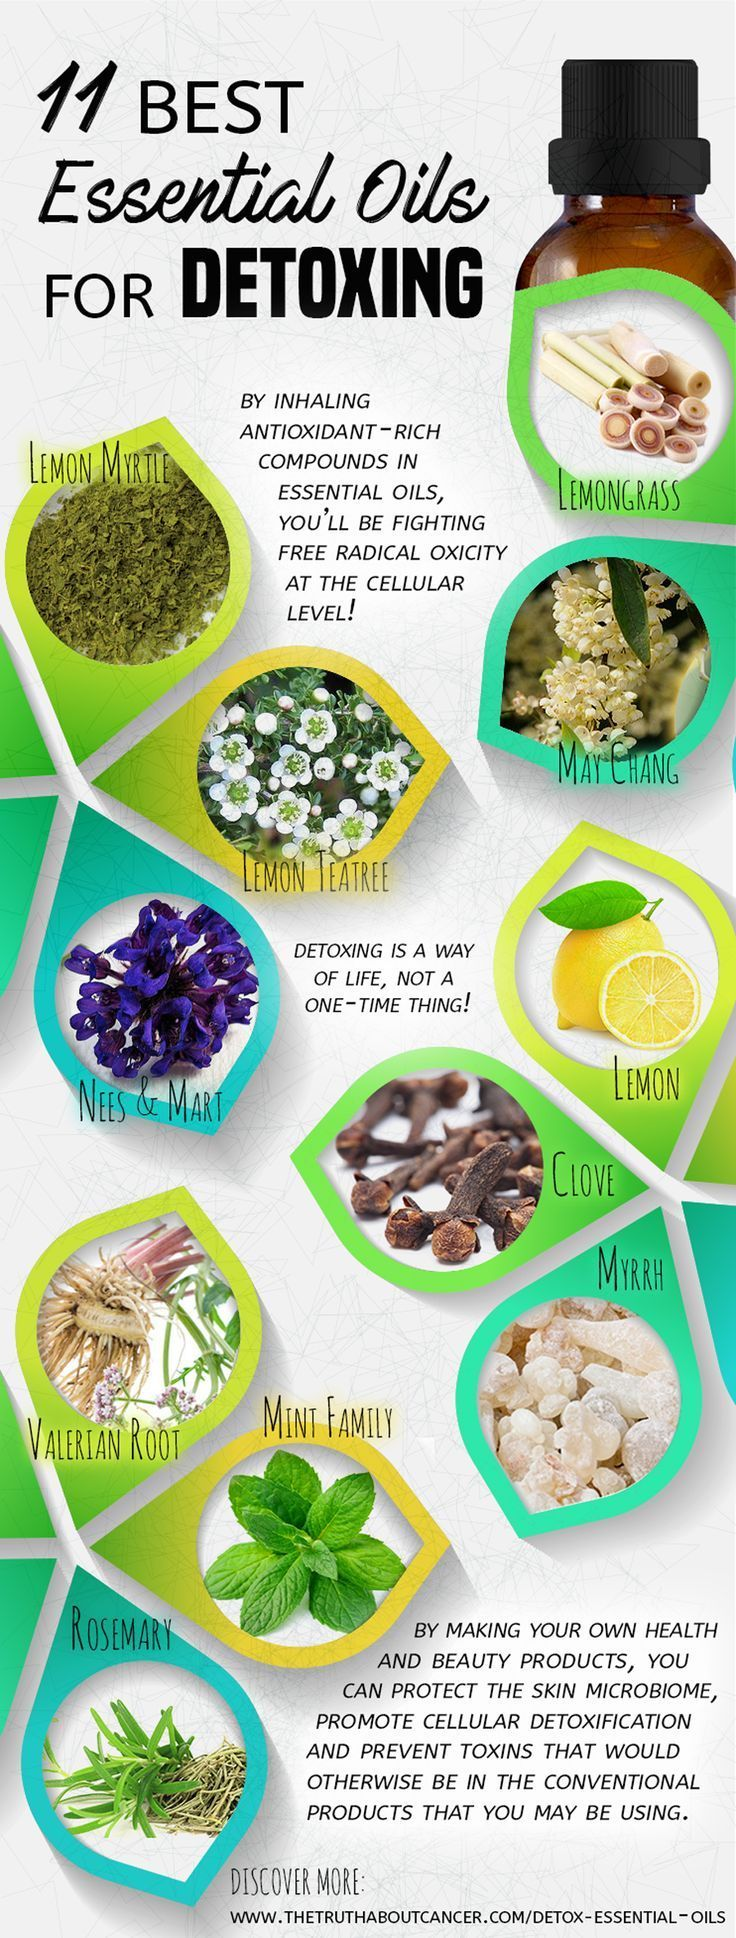 11 of the Best Essential Oils for Detox